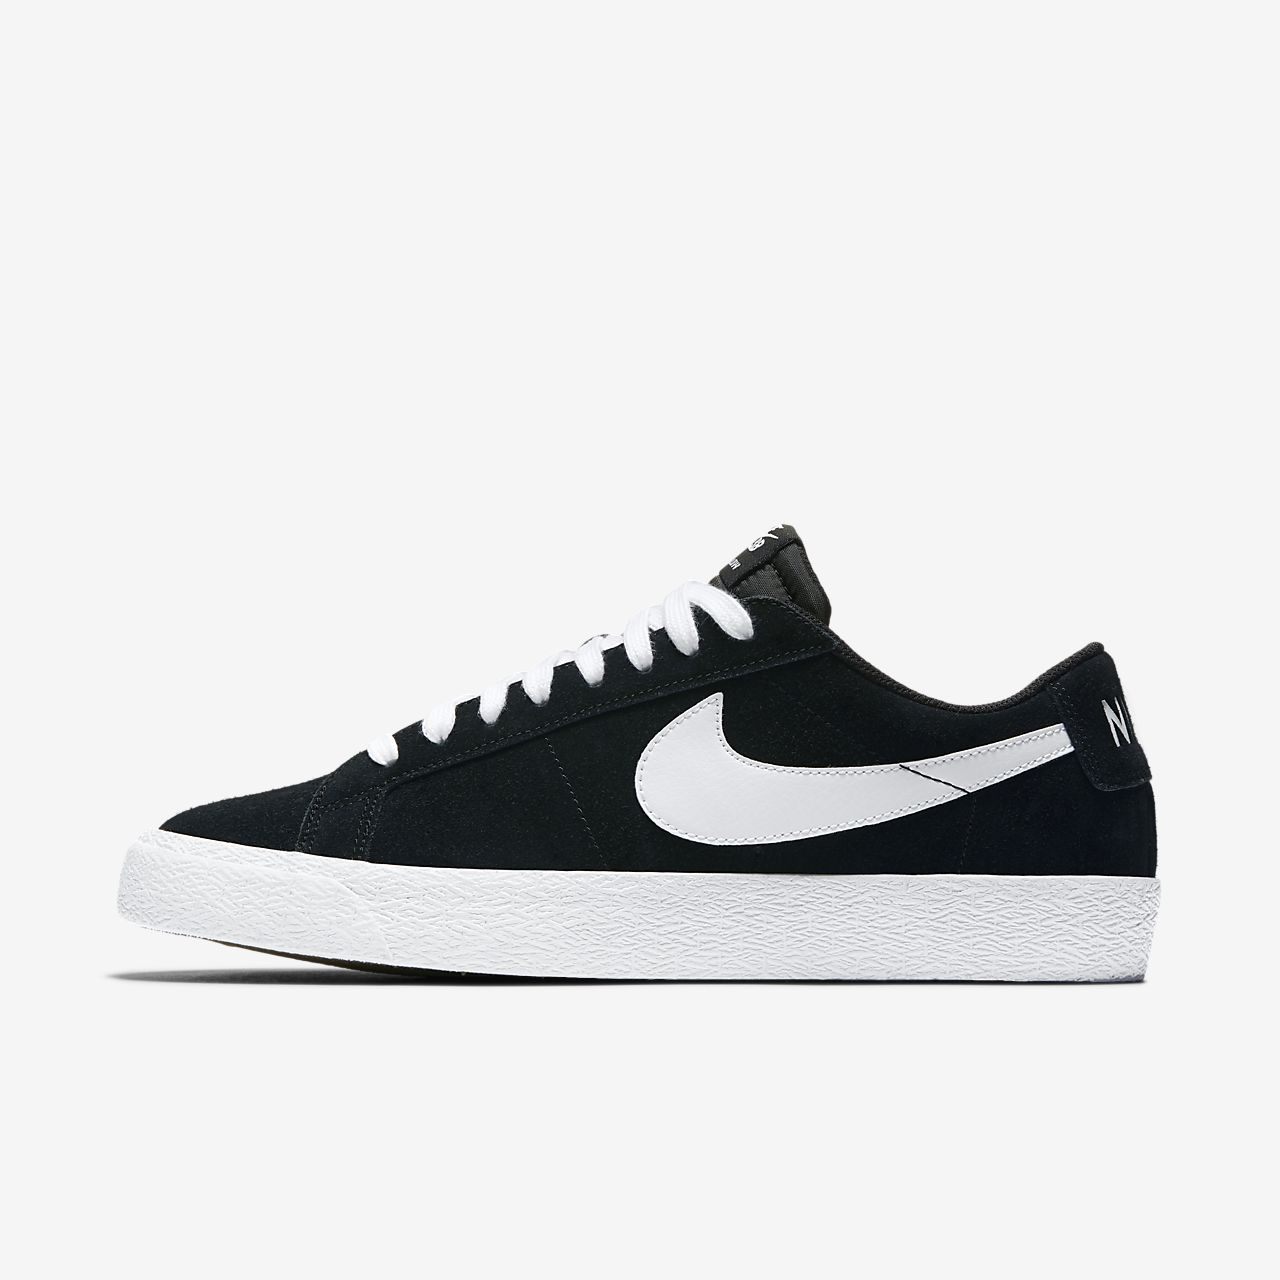 reputable site 8bf52 9de69 ... Nike SB Blazer Zoom Low Mens Skateboarding Shoe